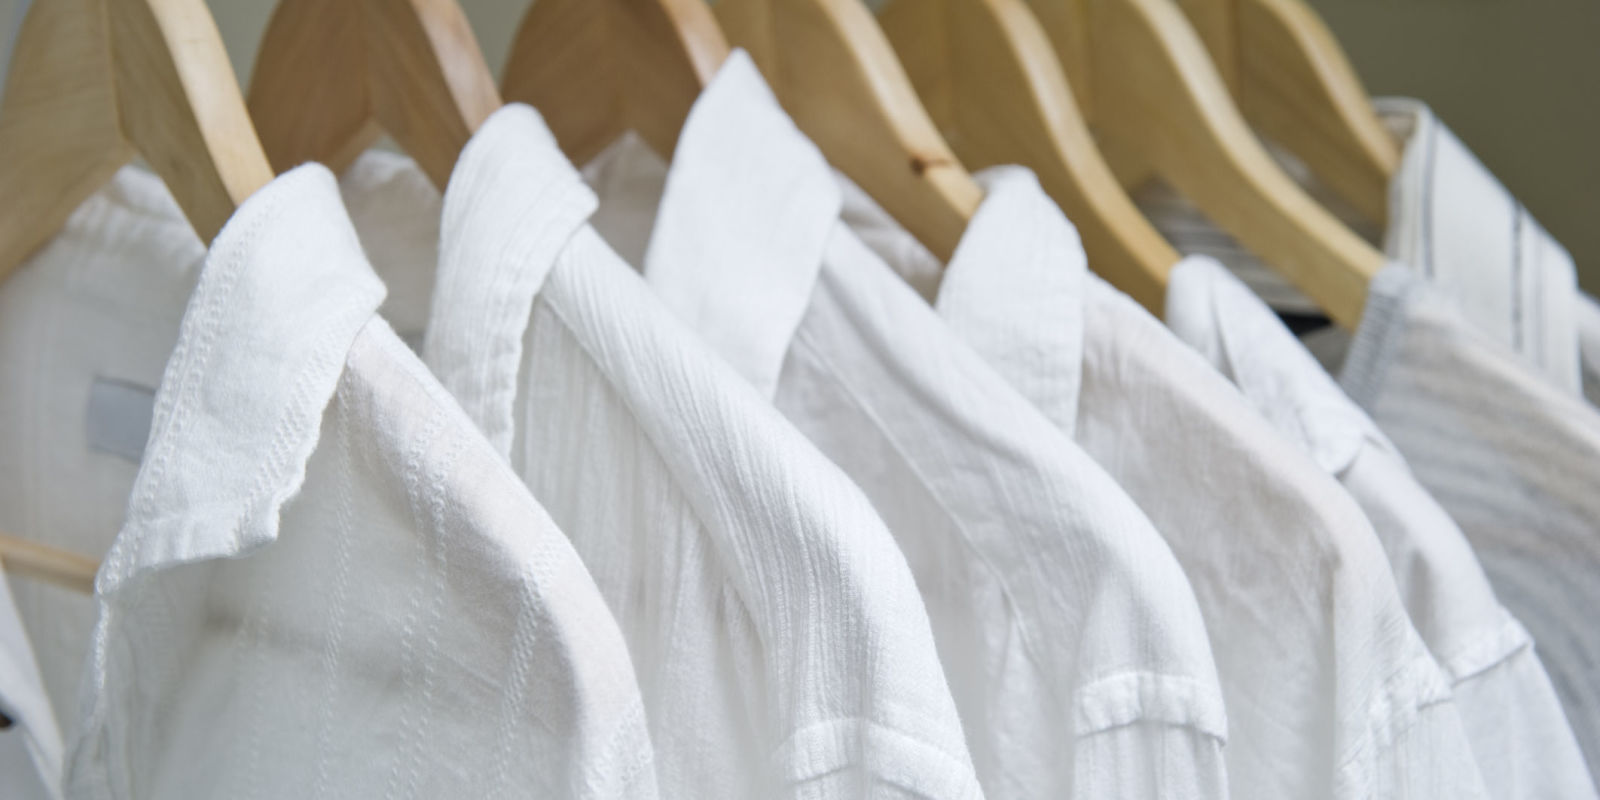 How to get out sweat stains how to keep white clothes white for How to prevent sweat stains on shirts